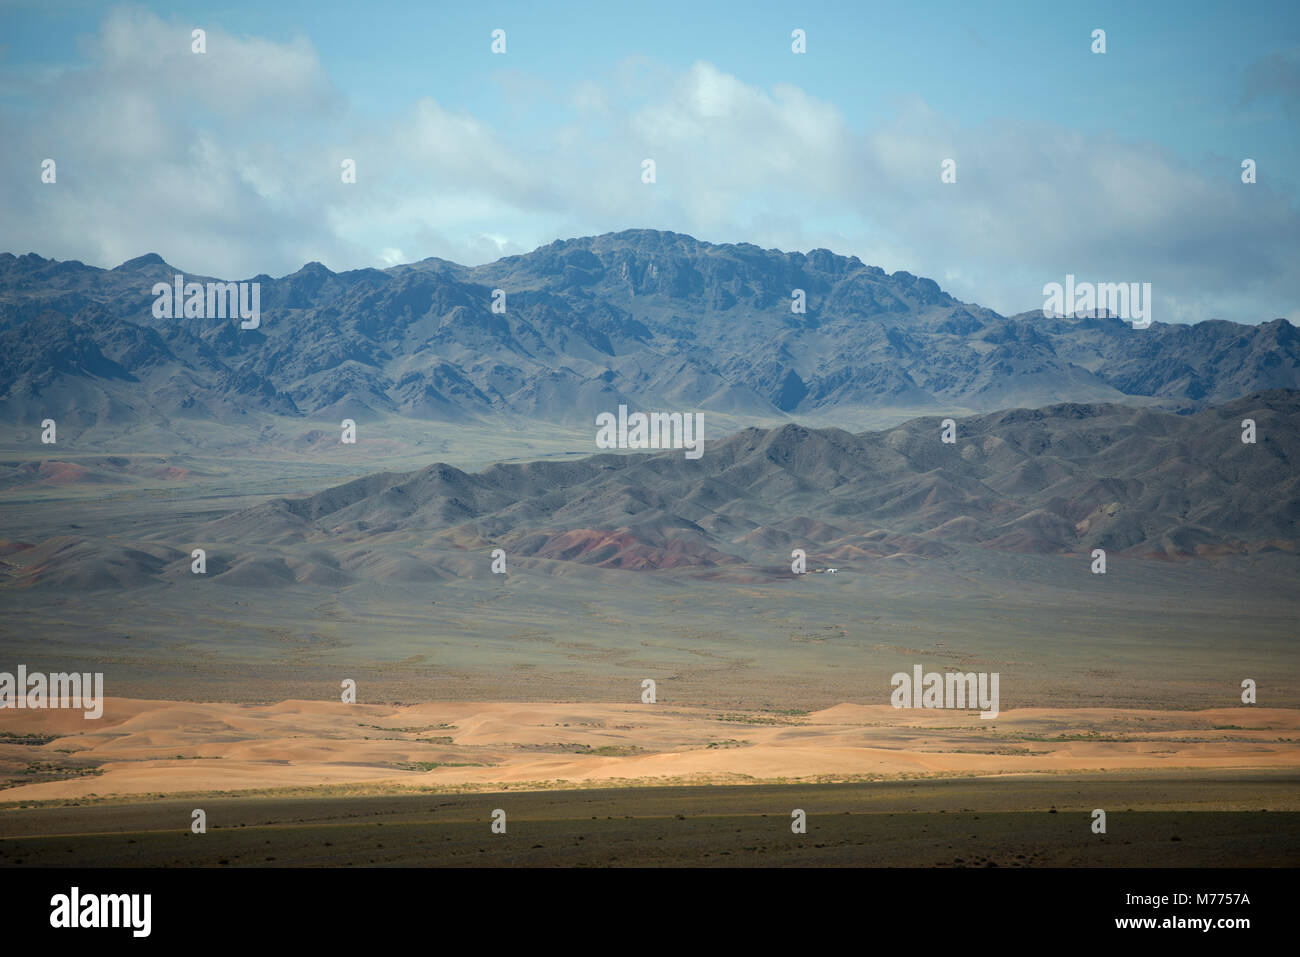 Difficult to spot at first, this tiny settlement shows the isolation of a nomadic community in the mountains of - Stock Image